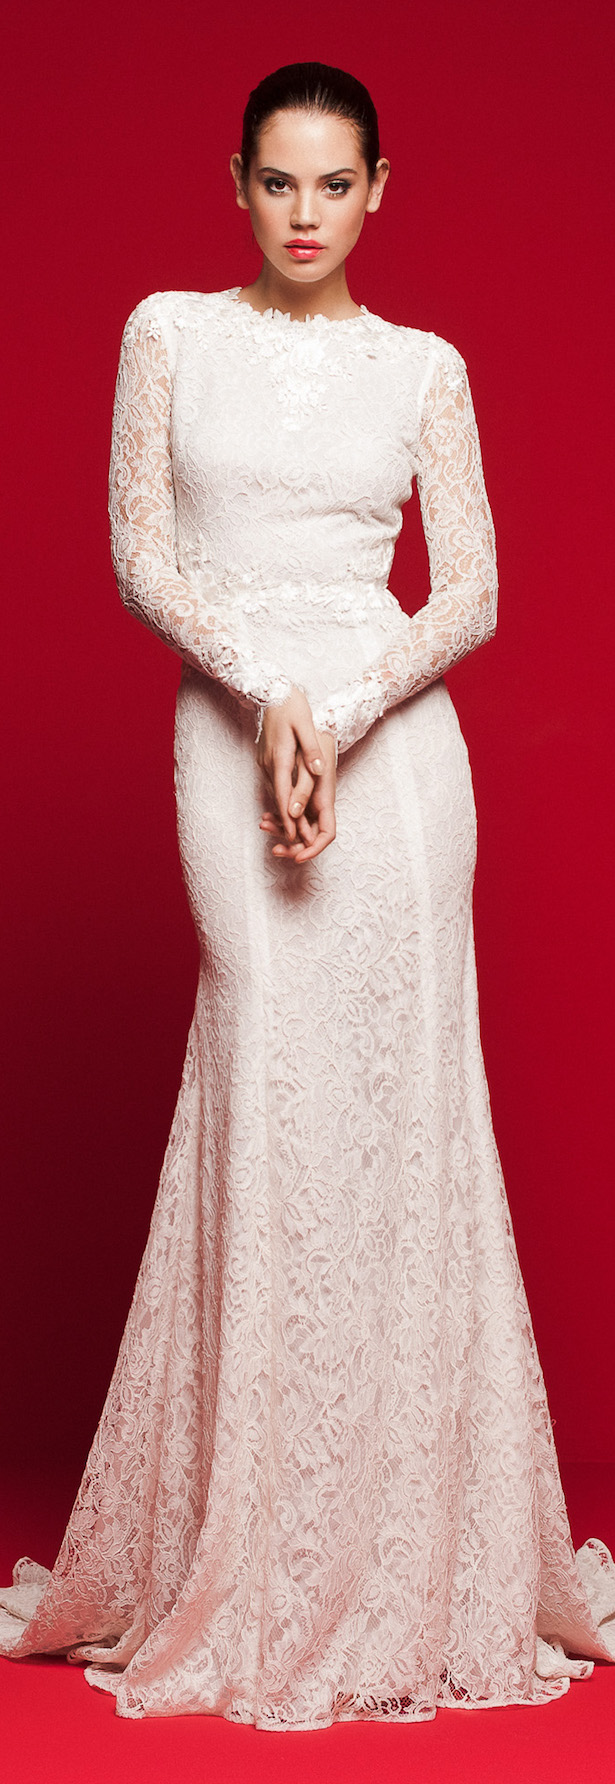 Long sleeve fitted Wedding Dress - Daalarna 2018 Love Story Bridal Collection